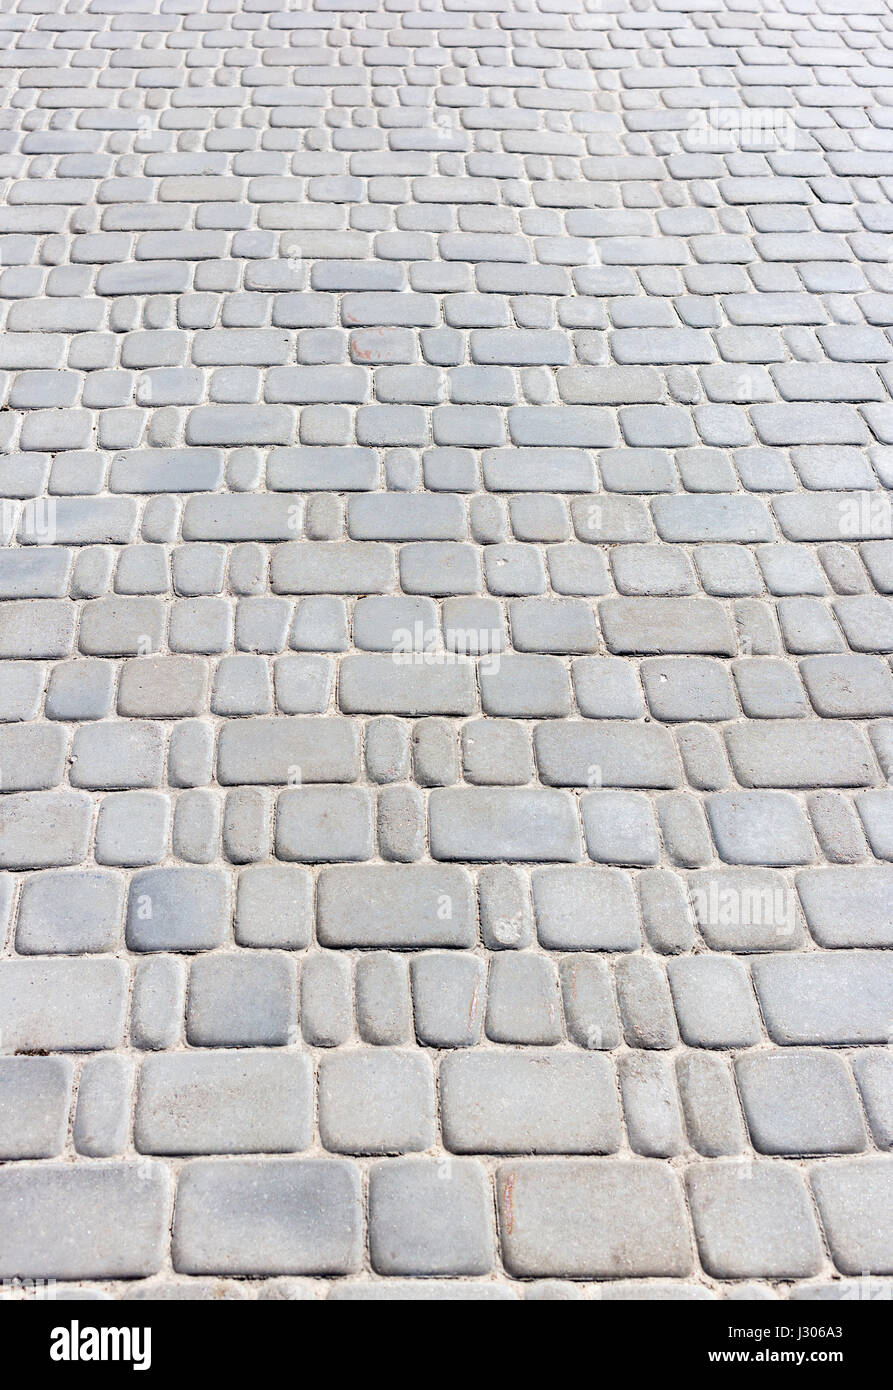 Smooth shaped white stones surface texture background stock photo - Abstract Background Texture Of Paving Stone Blocks Stock Image